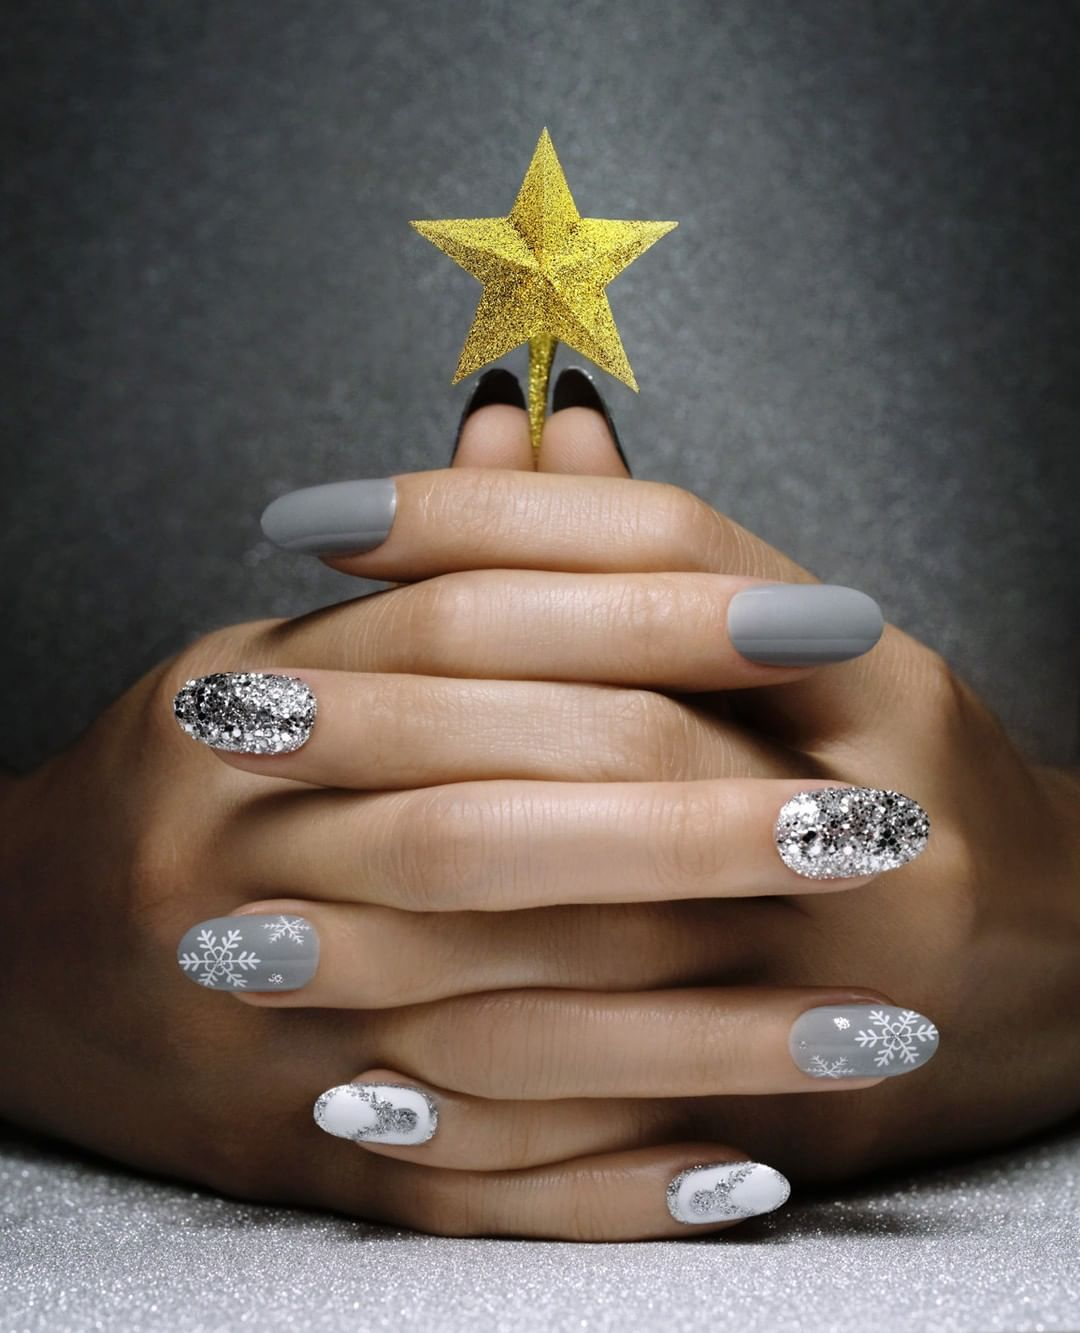 Kiss Products On Instagram With This Holiday Design Your Nails Are The Shining Stars Nail Design By Nailsbyryoko Exclus Nail Designs Kiss Products Nails